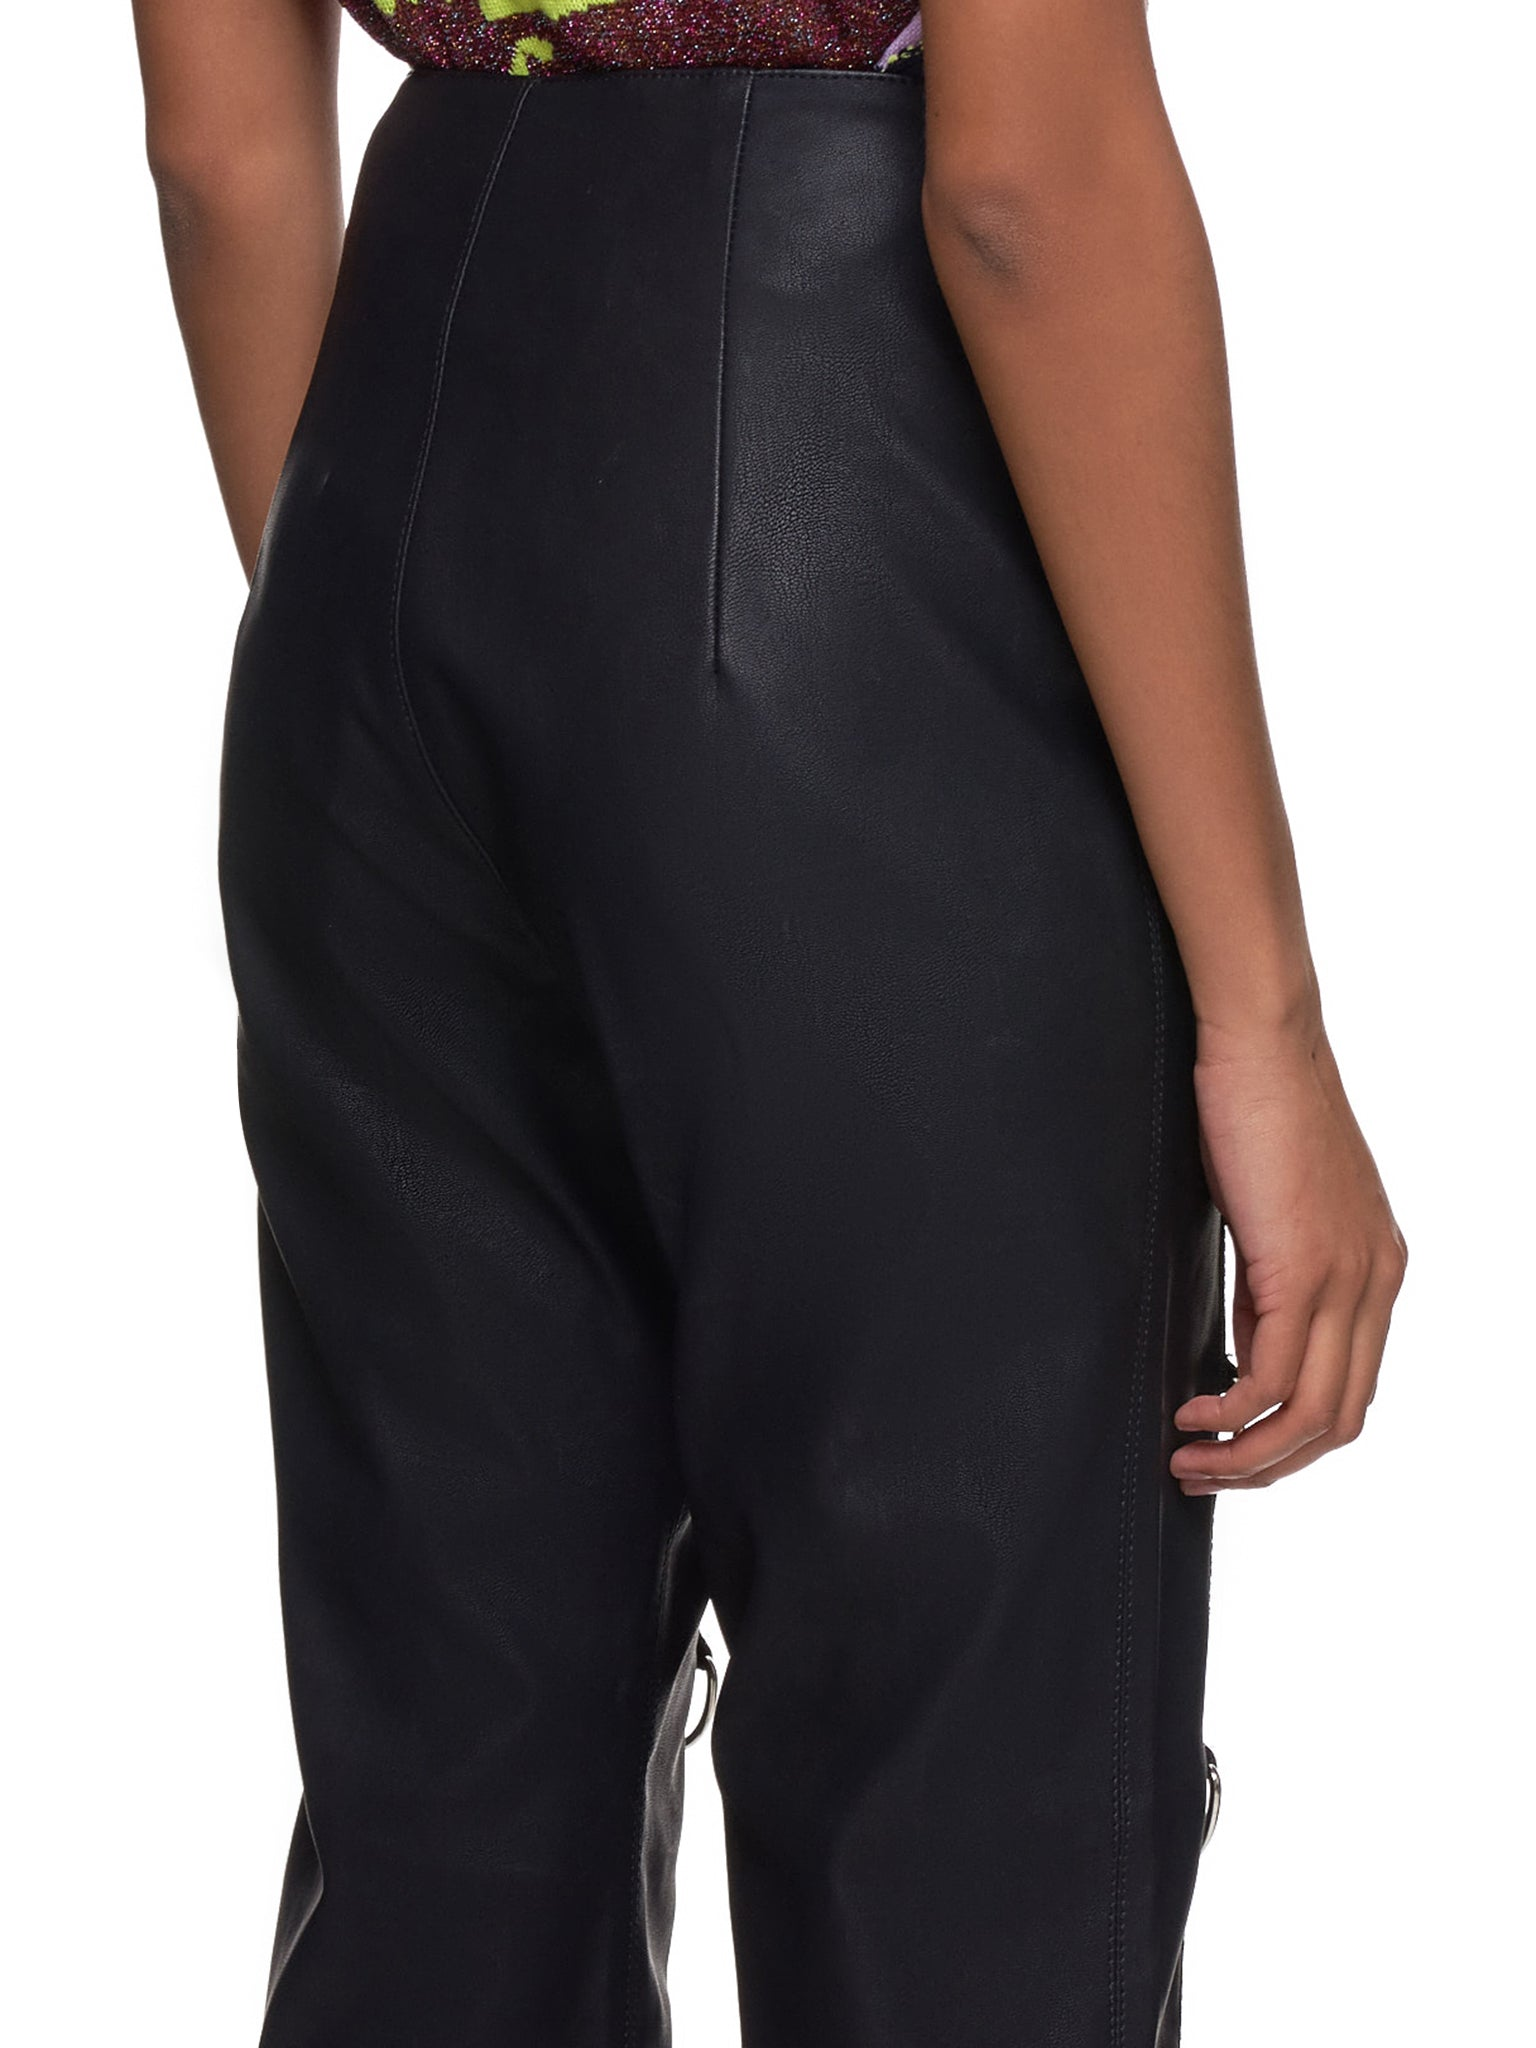 Leo Trousers - Hlorenzo Detail 1